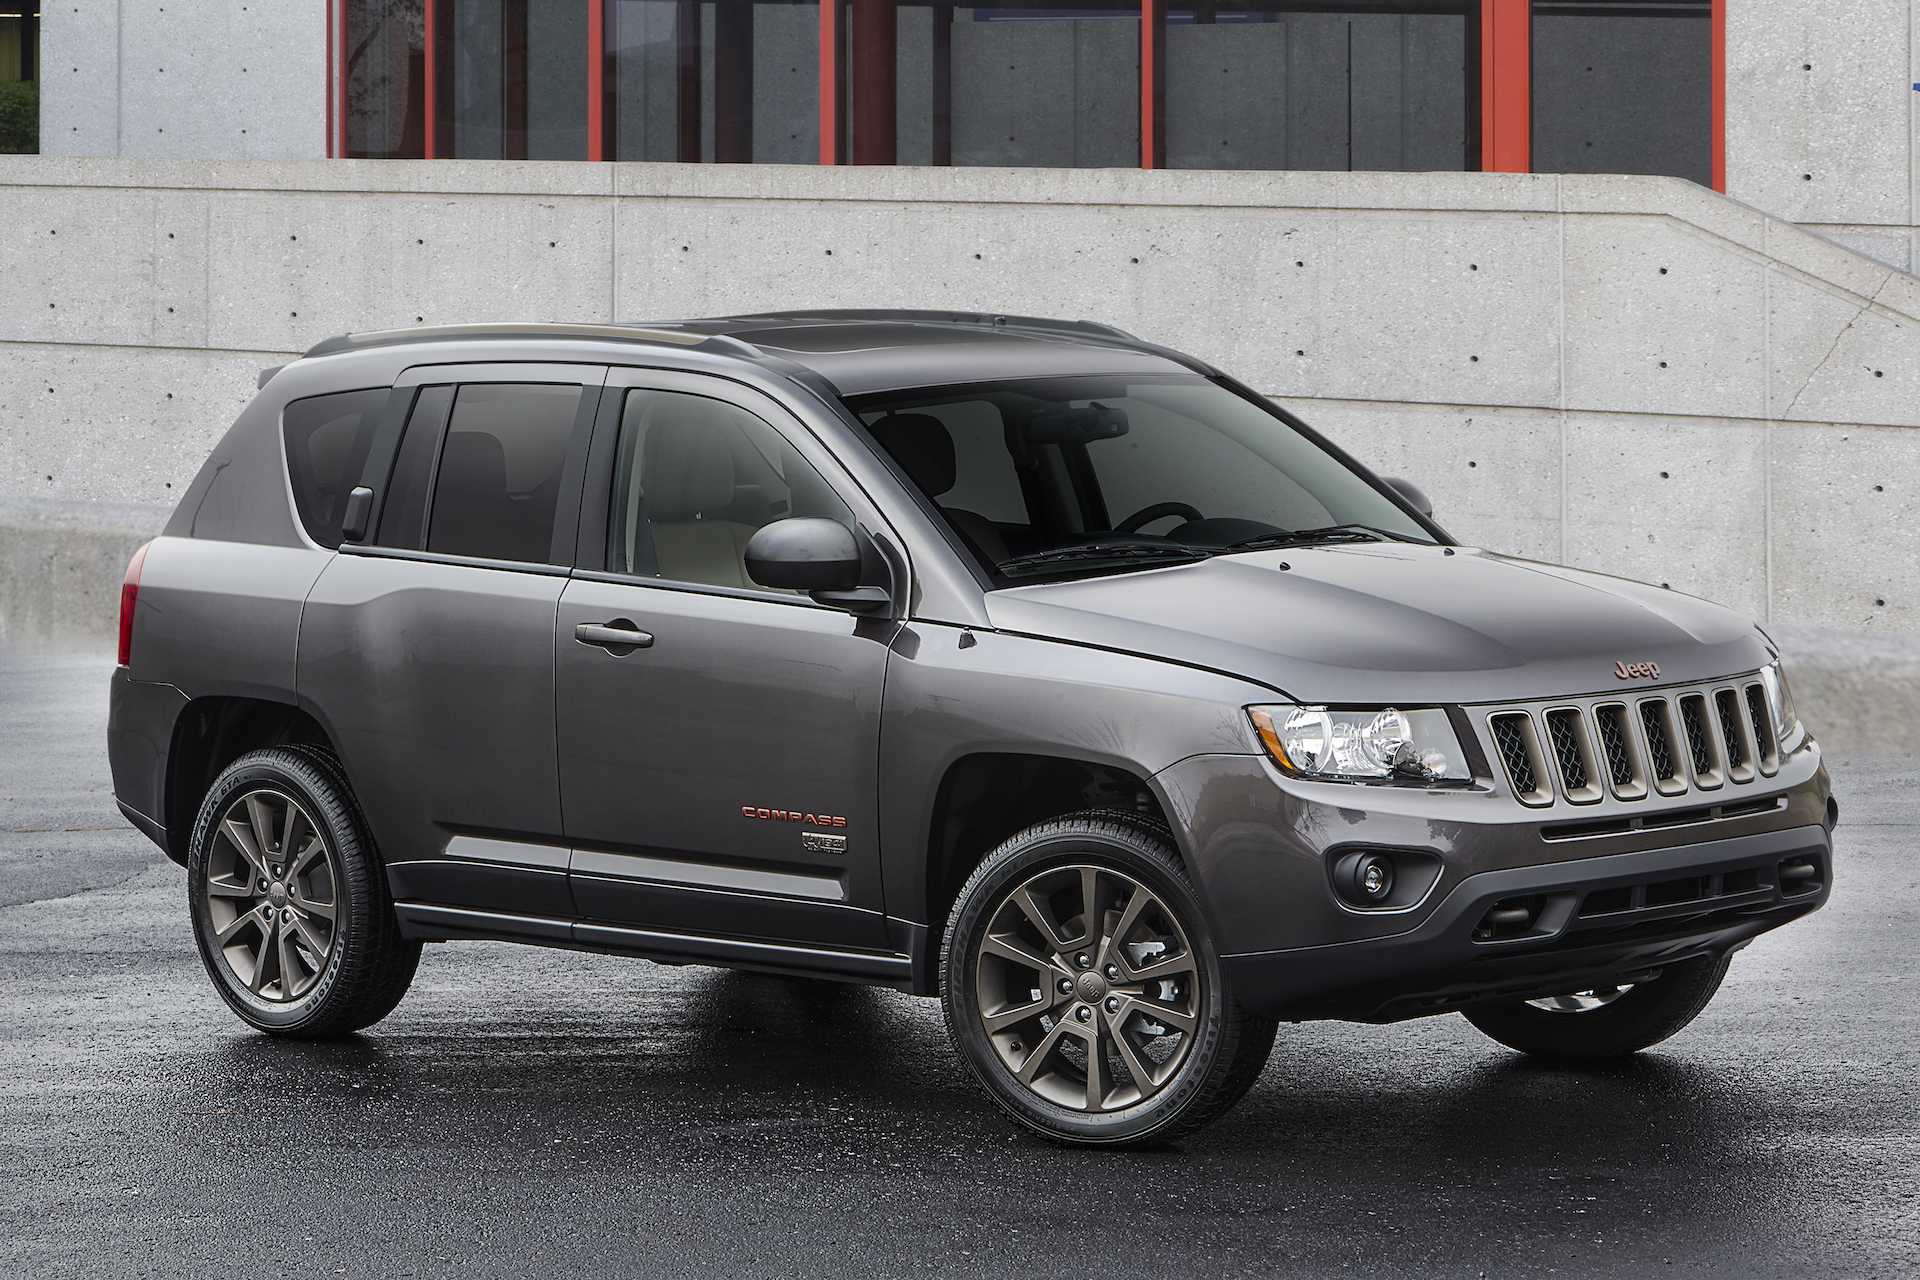 Fort Worth Toyota >> 2017 Jeep Compass Review, Ratings, Specs, Prices, and Photos - The Car Connection